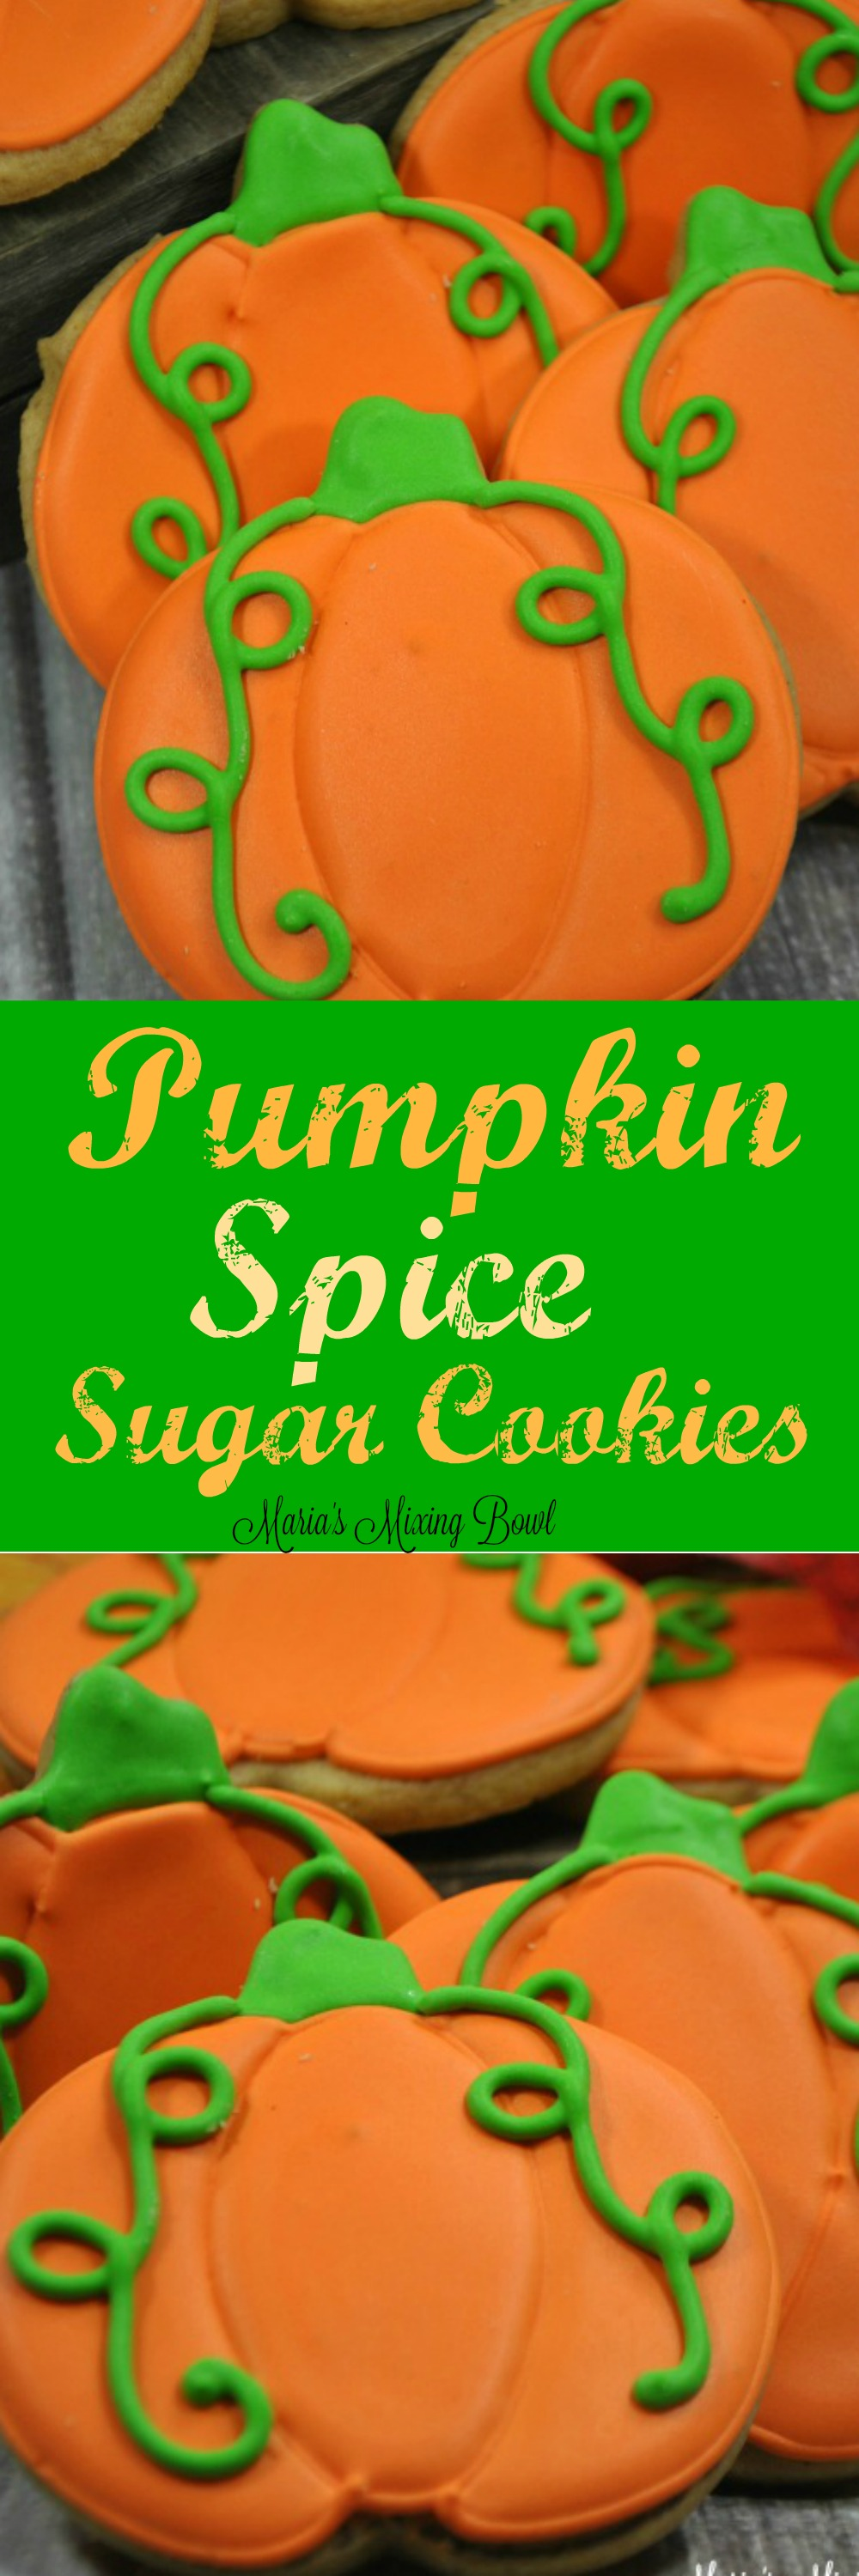 Pumpkin Spice Sugar Cookies - Fall is in the air and that means it's pumpkin everything time! Pumpkin Spice Sugar Cookies actually have pumpkin in the cookie!